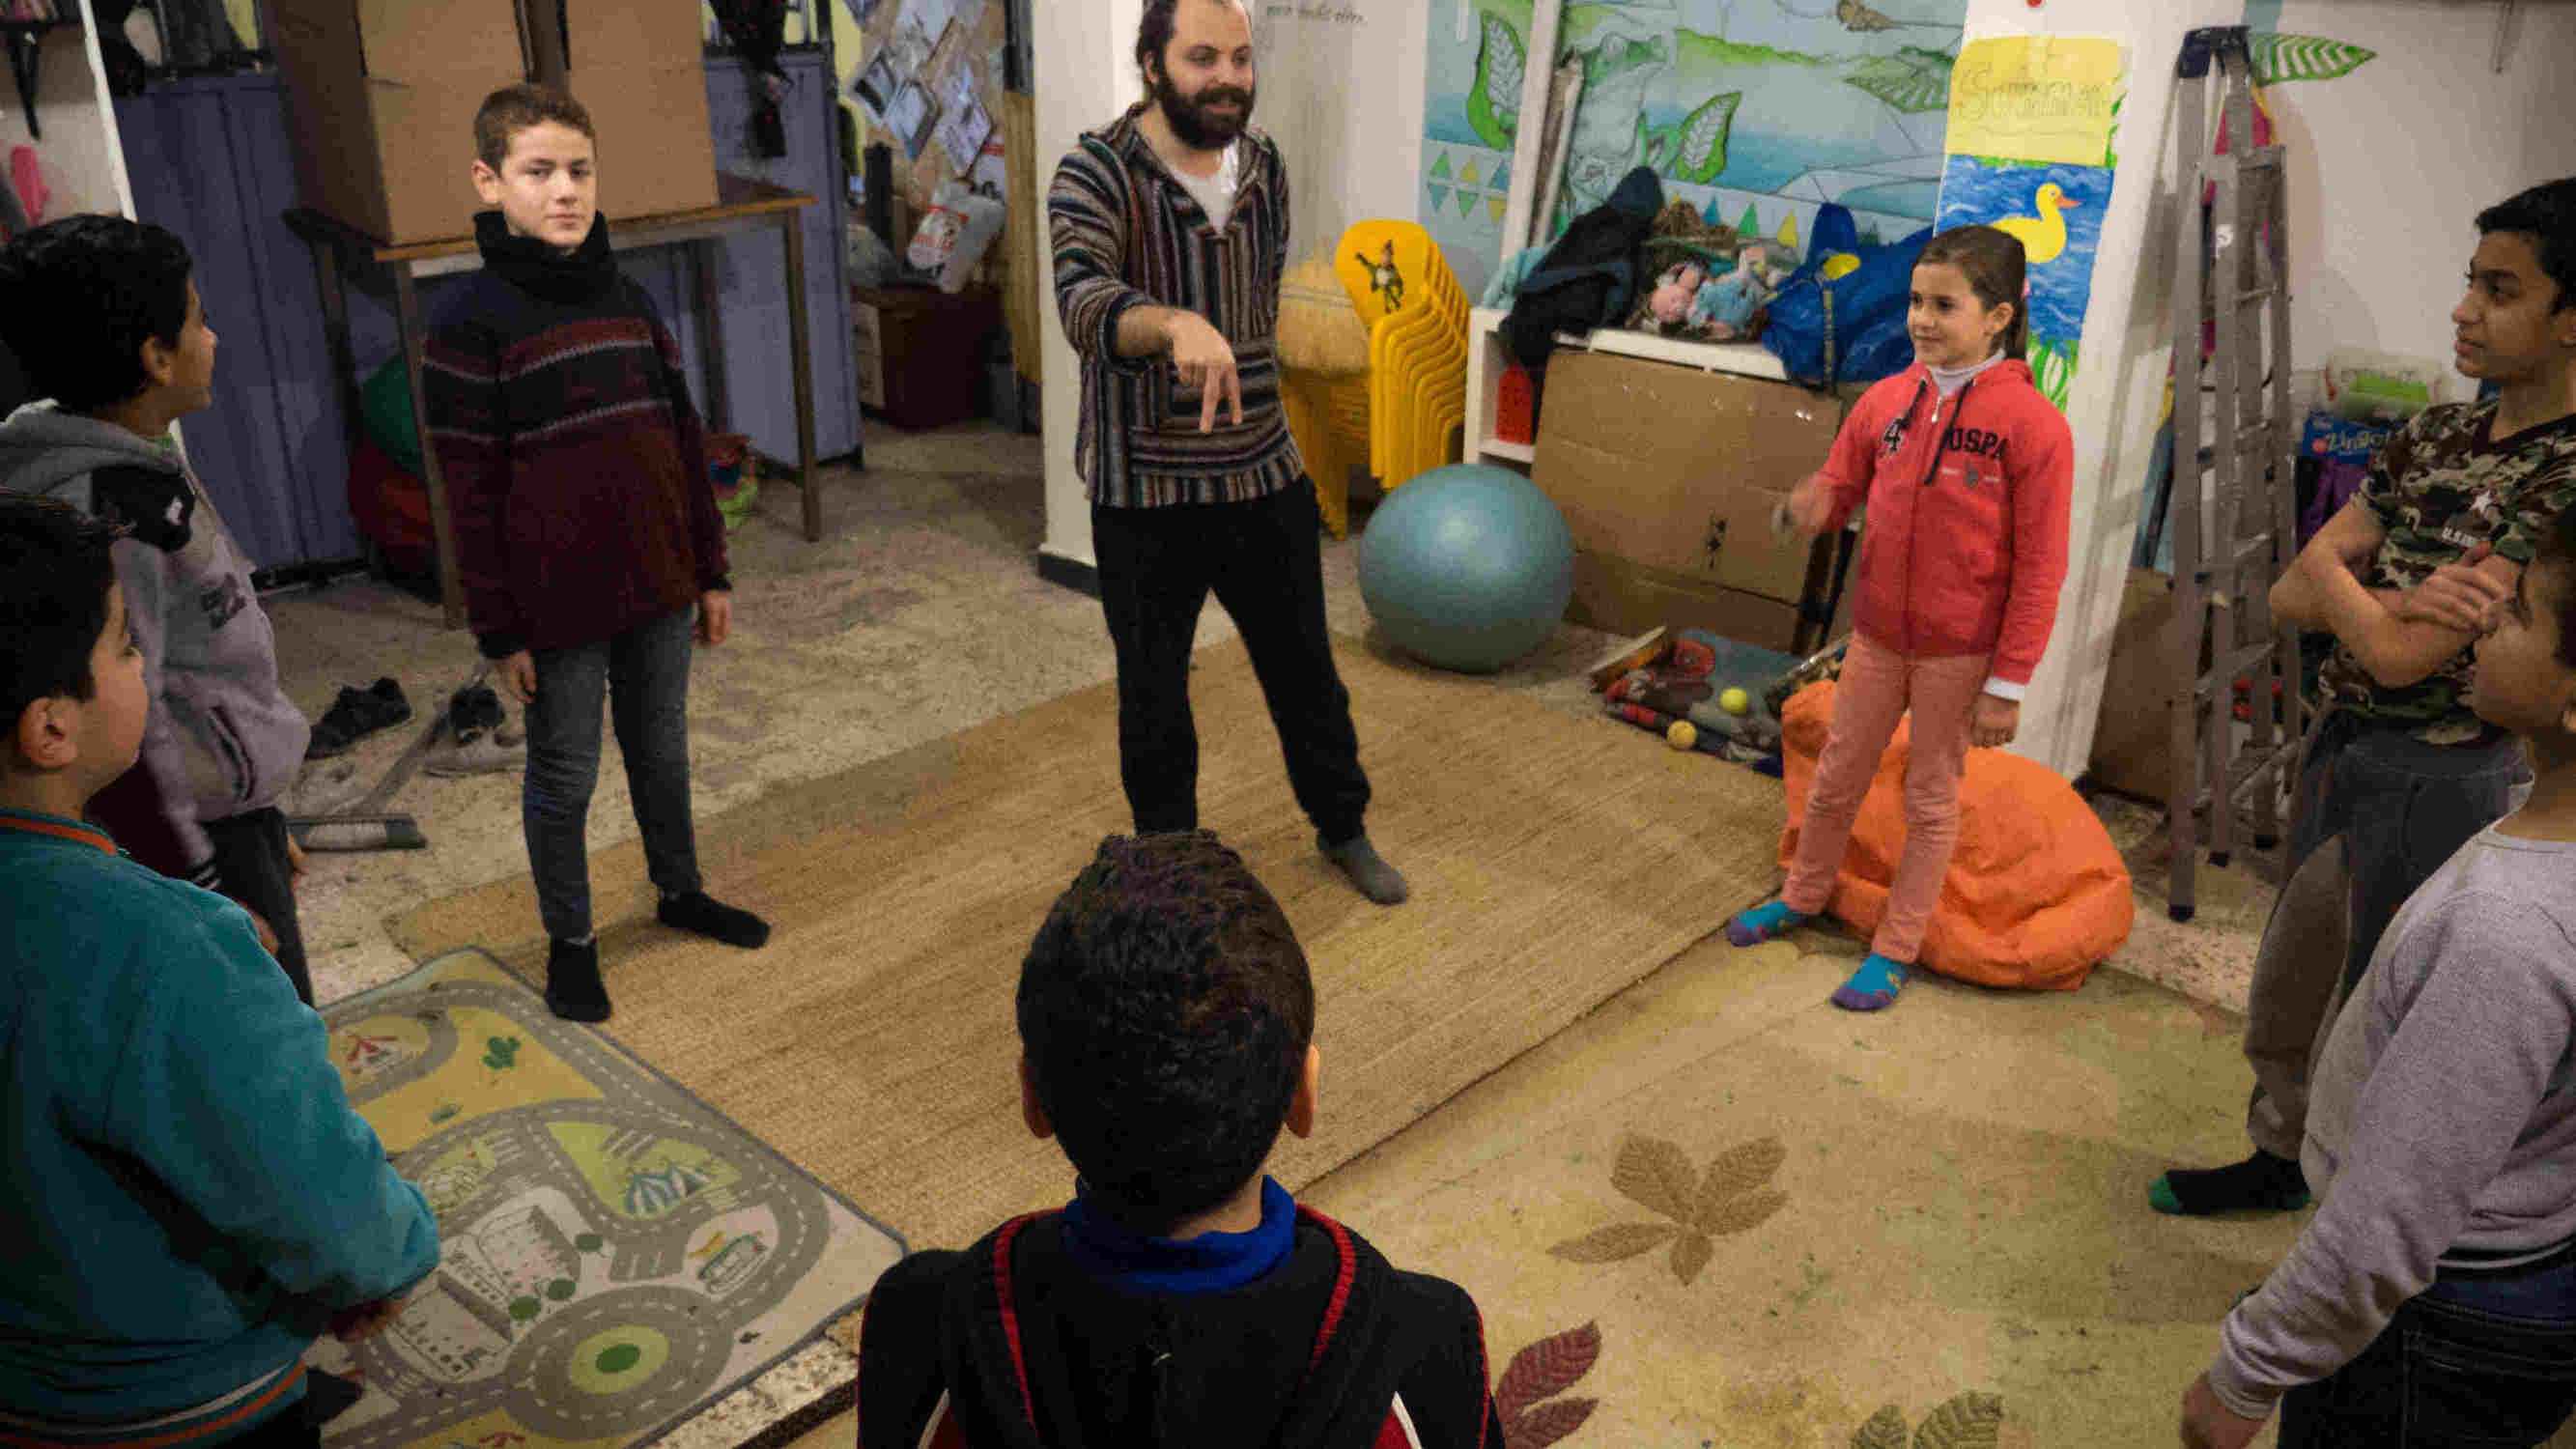 Capoeira_ small_projects_istanbul6